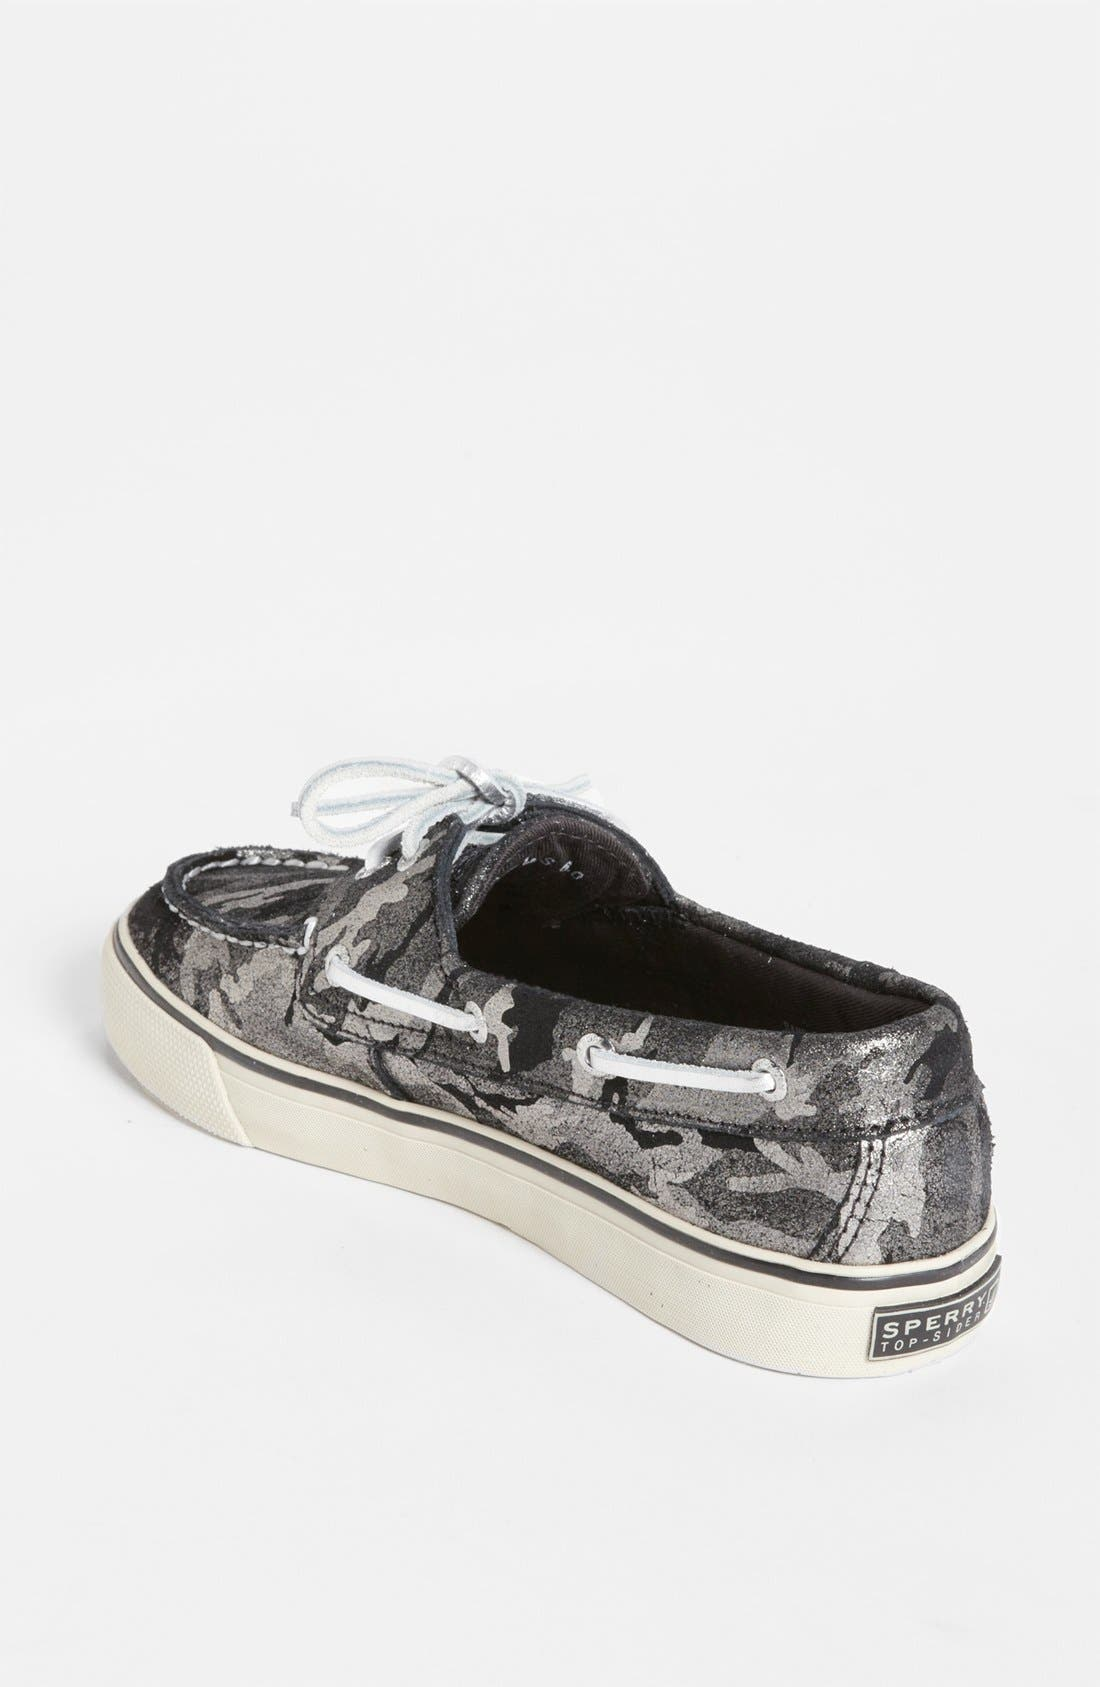 Top-Sider<sup>®</sup> 'Bahama' Sequined Boat Shoe,                             Alternate thumbnail 132, color,